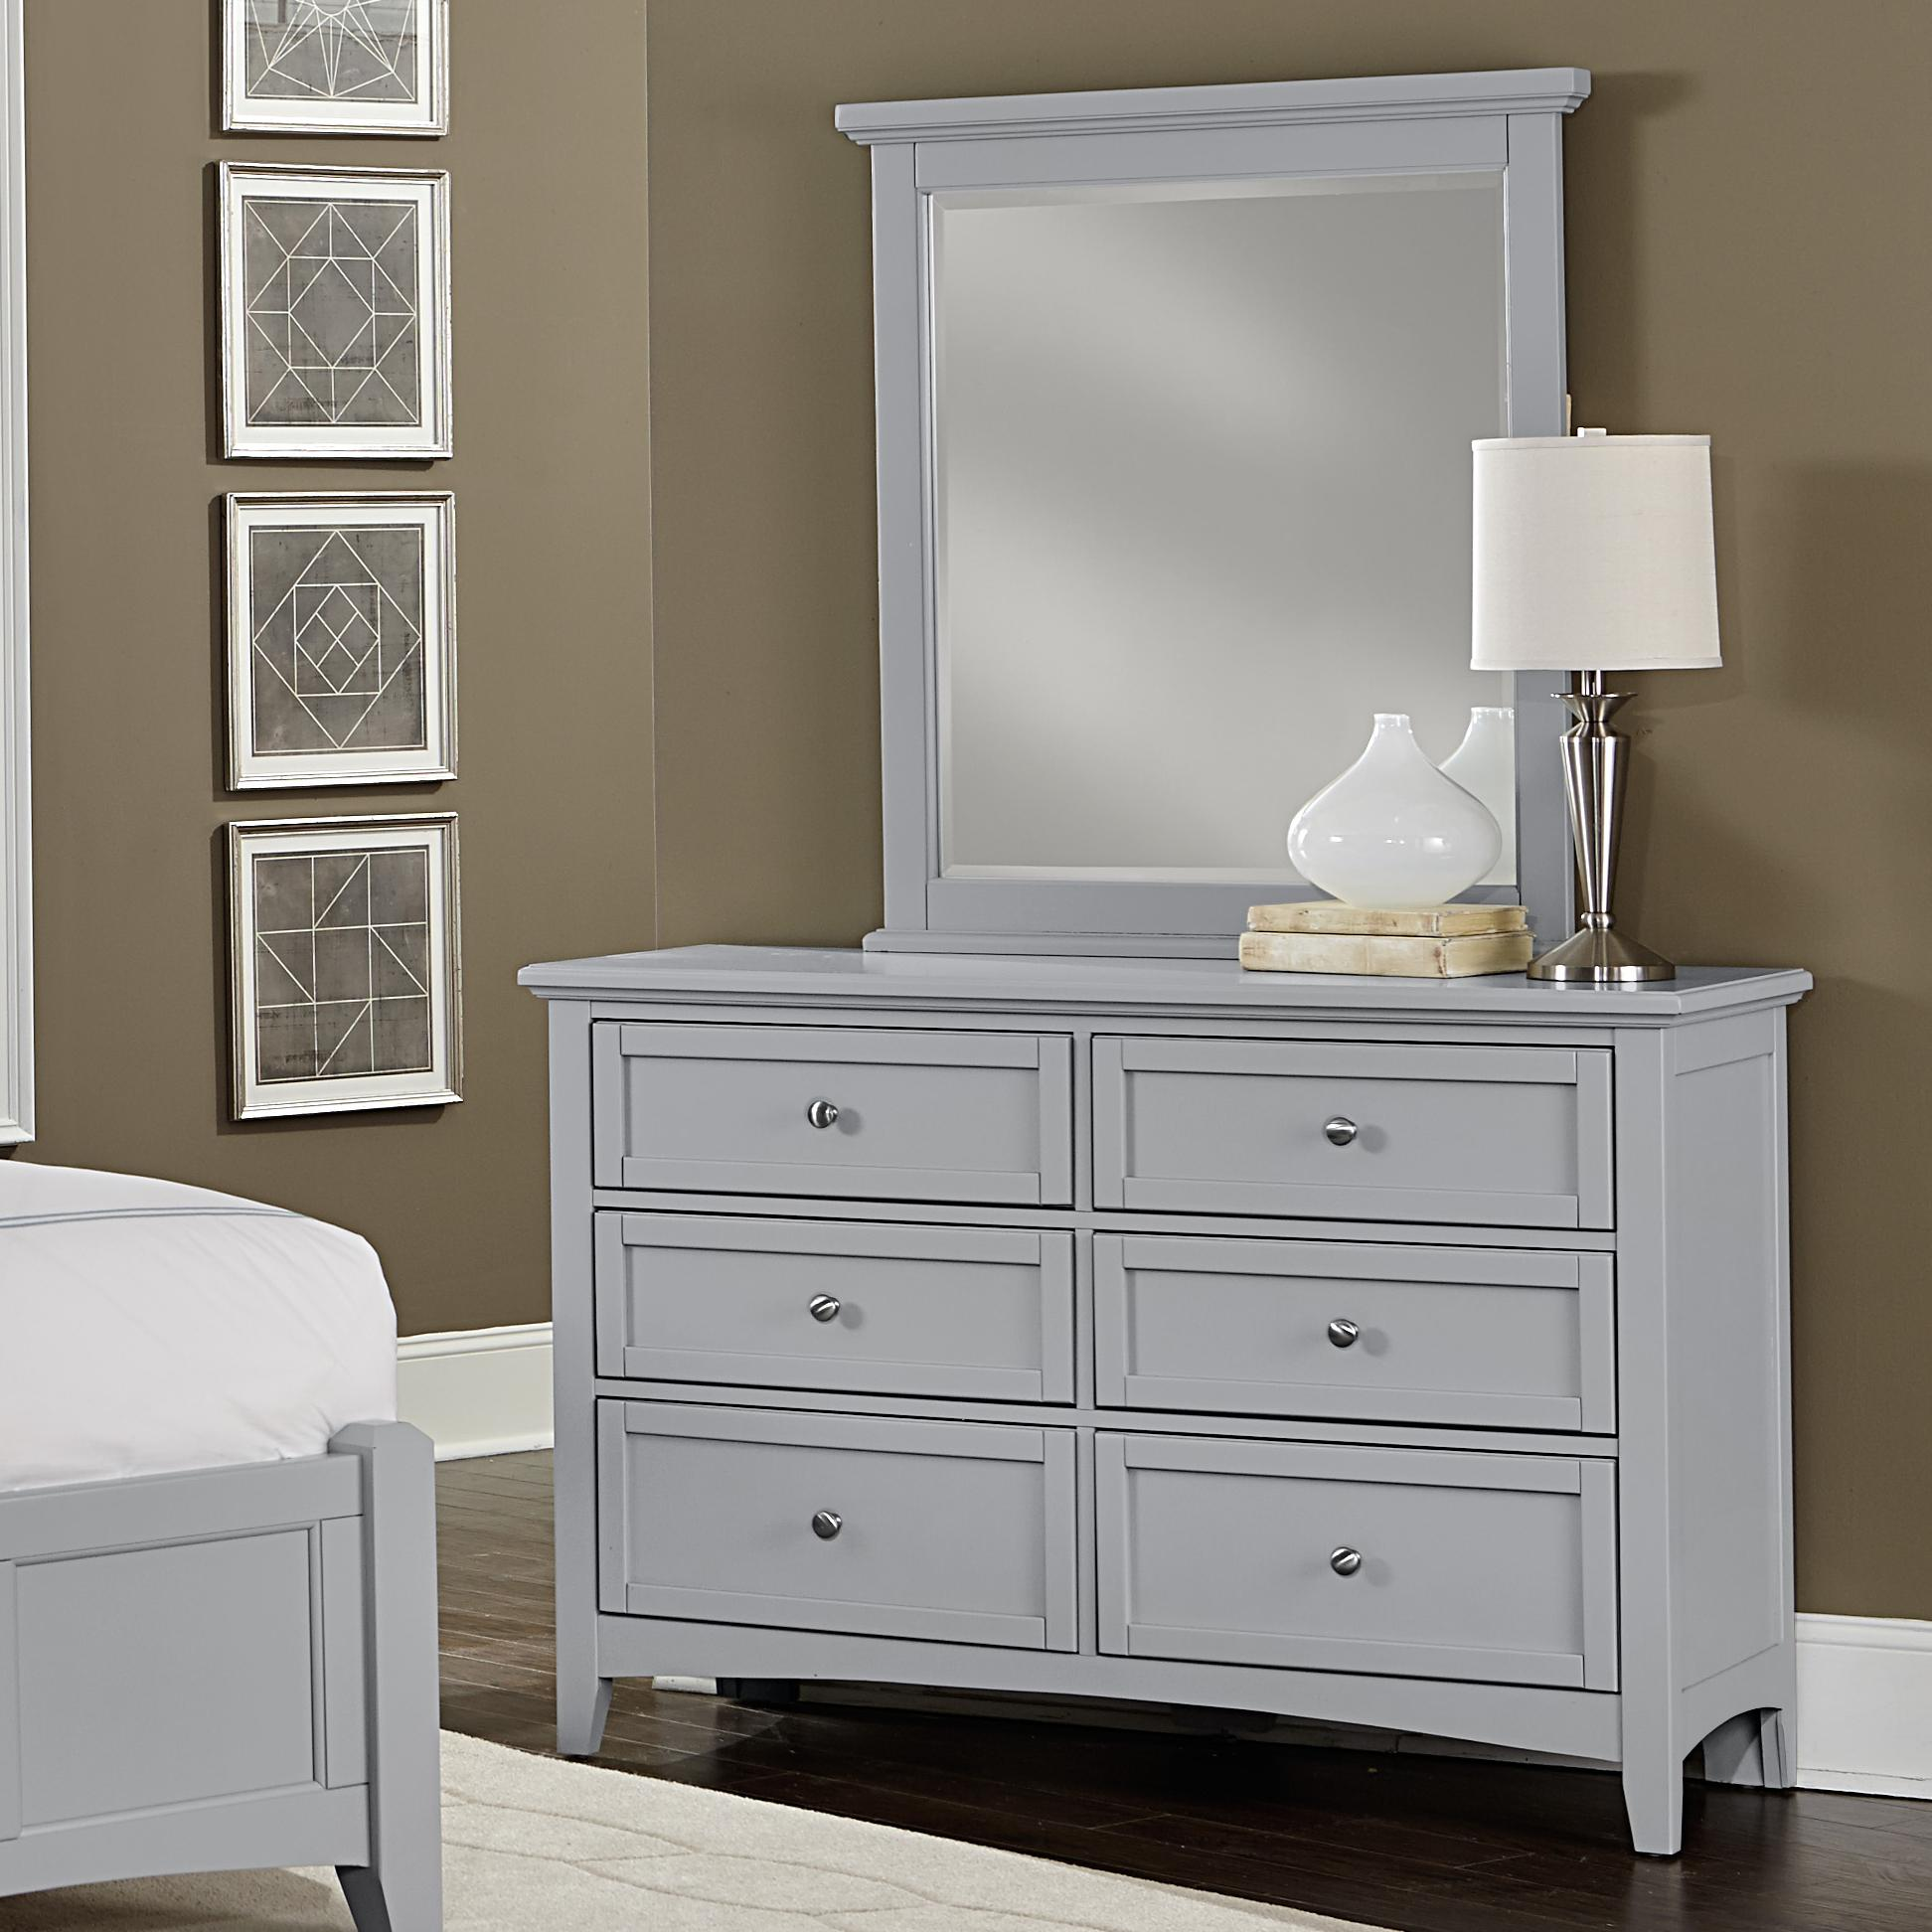 Vaughan Bassett Bonanza Double Dresser & Small Landscape Mirror - Item Number: BB26-001+442